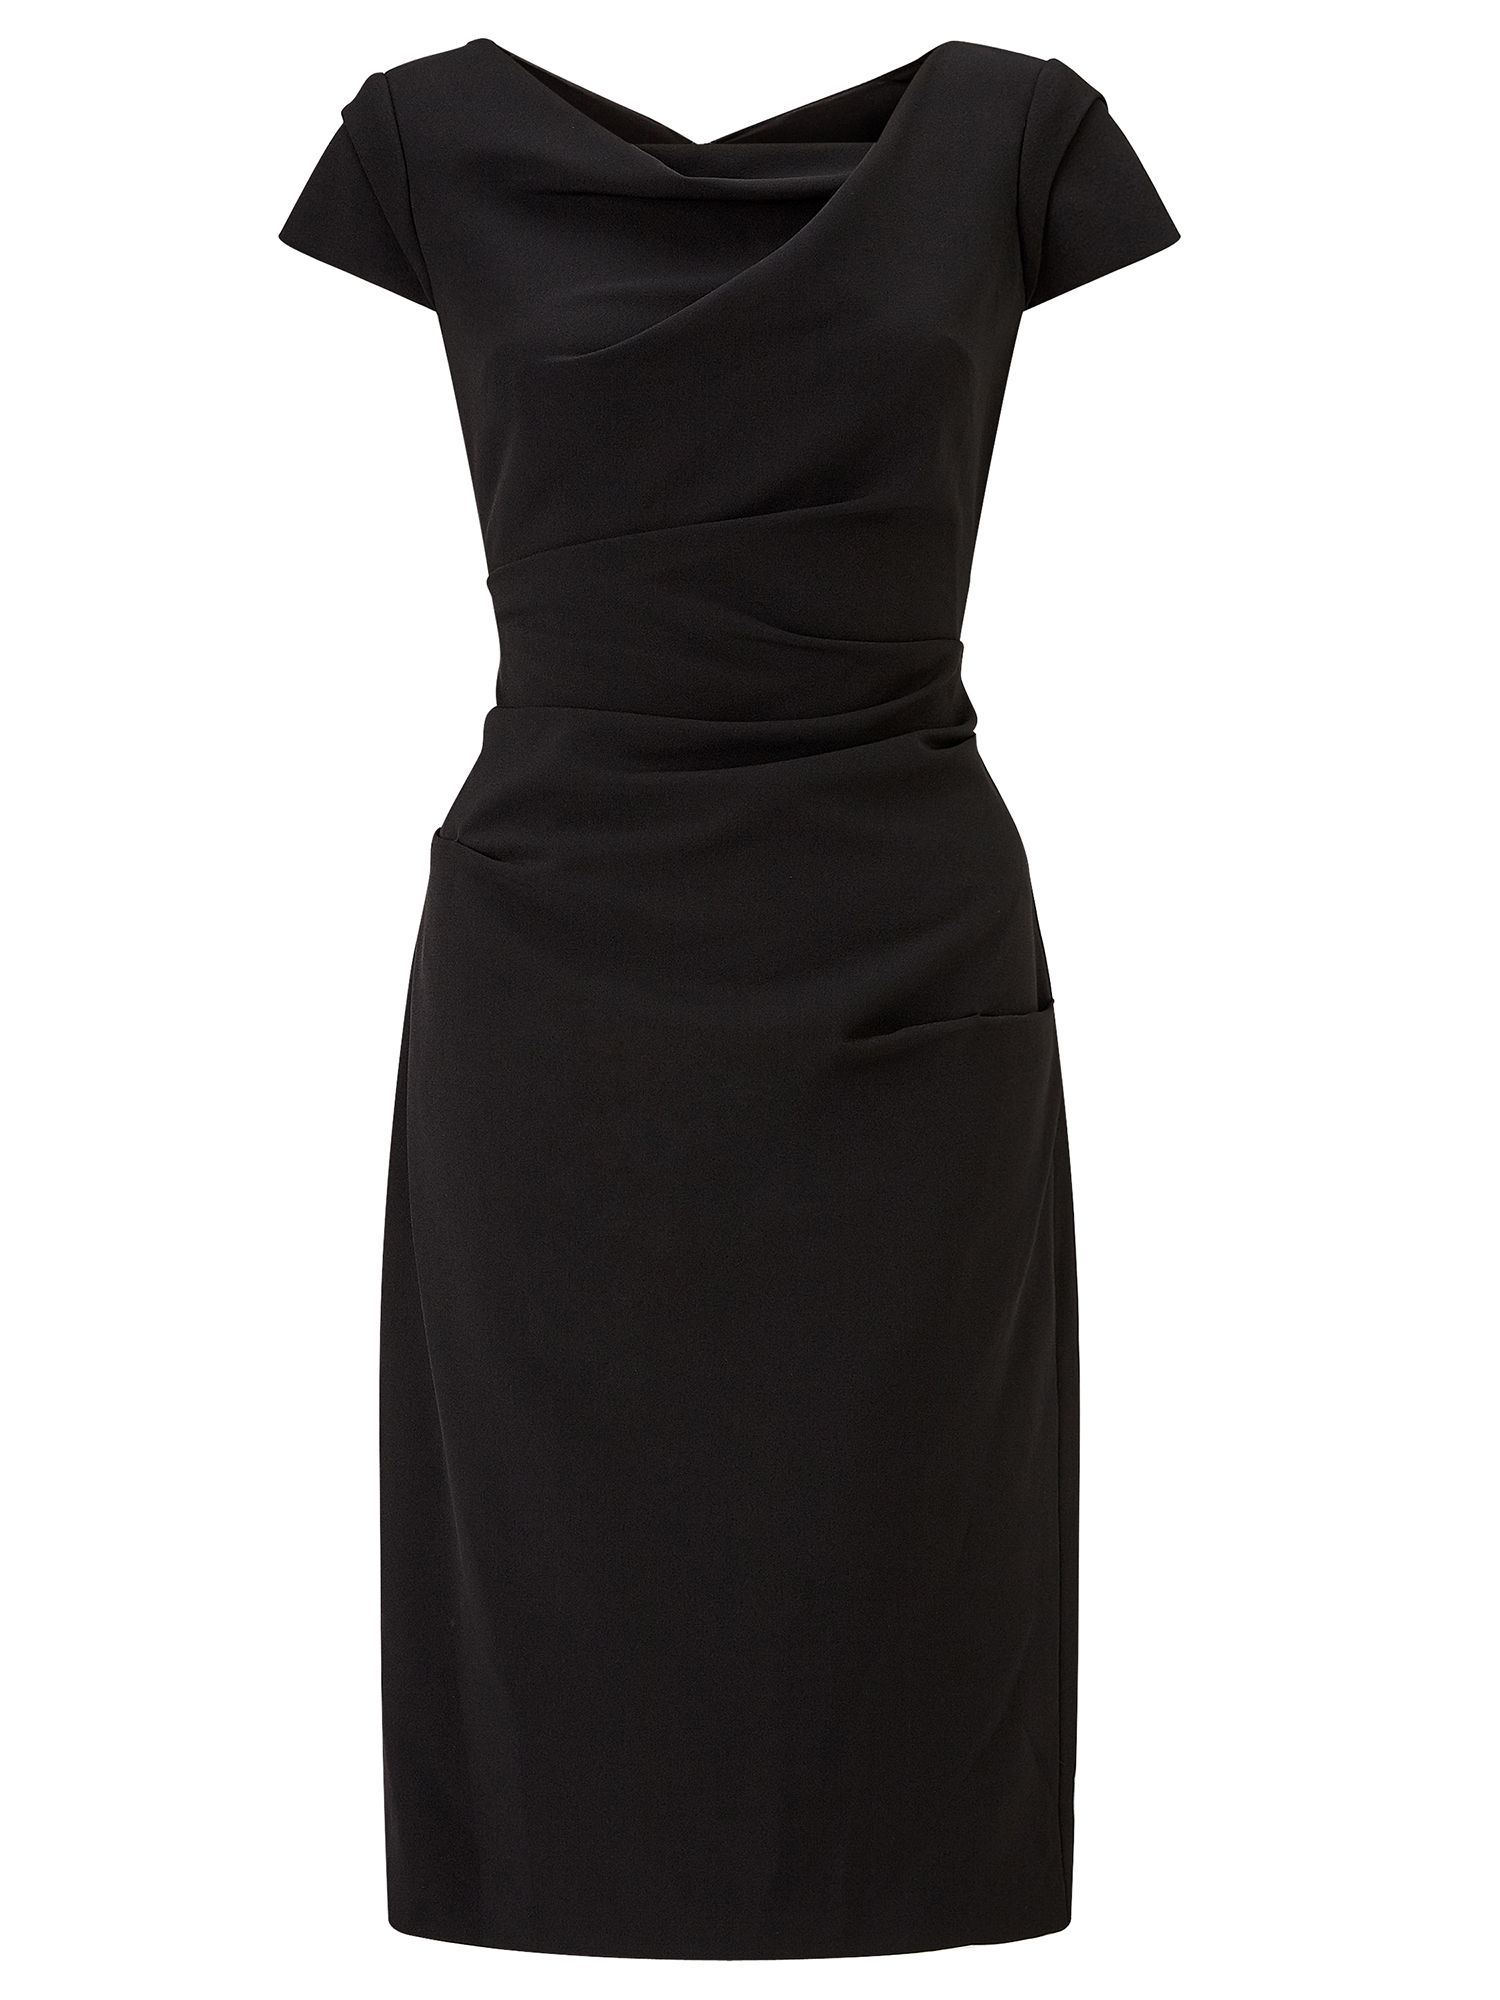 Adrianna Papell Tailored sheath dress, Black